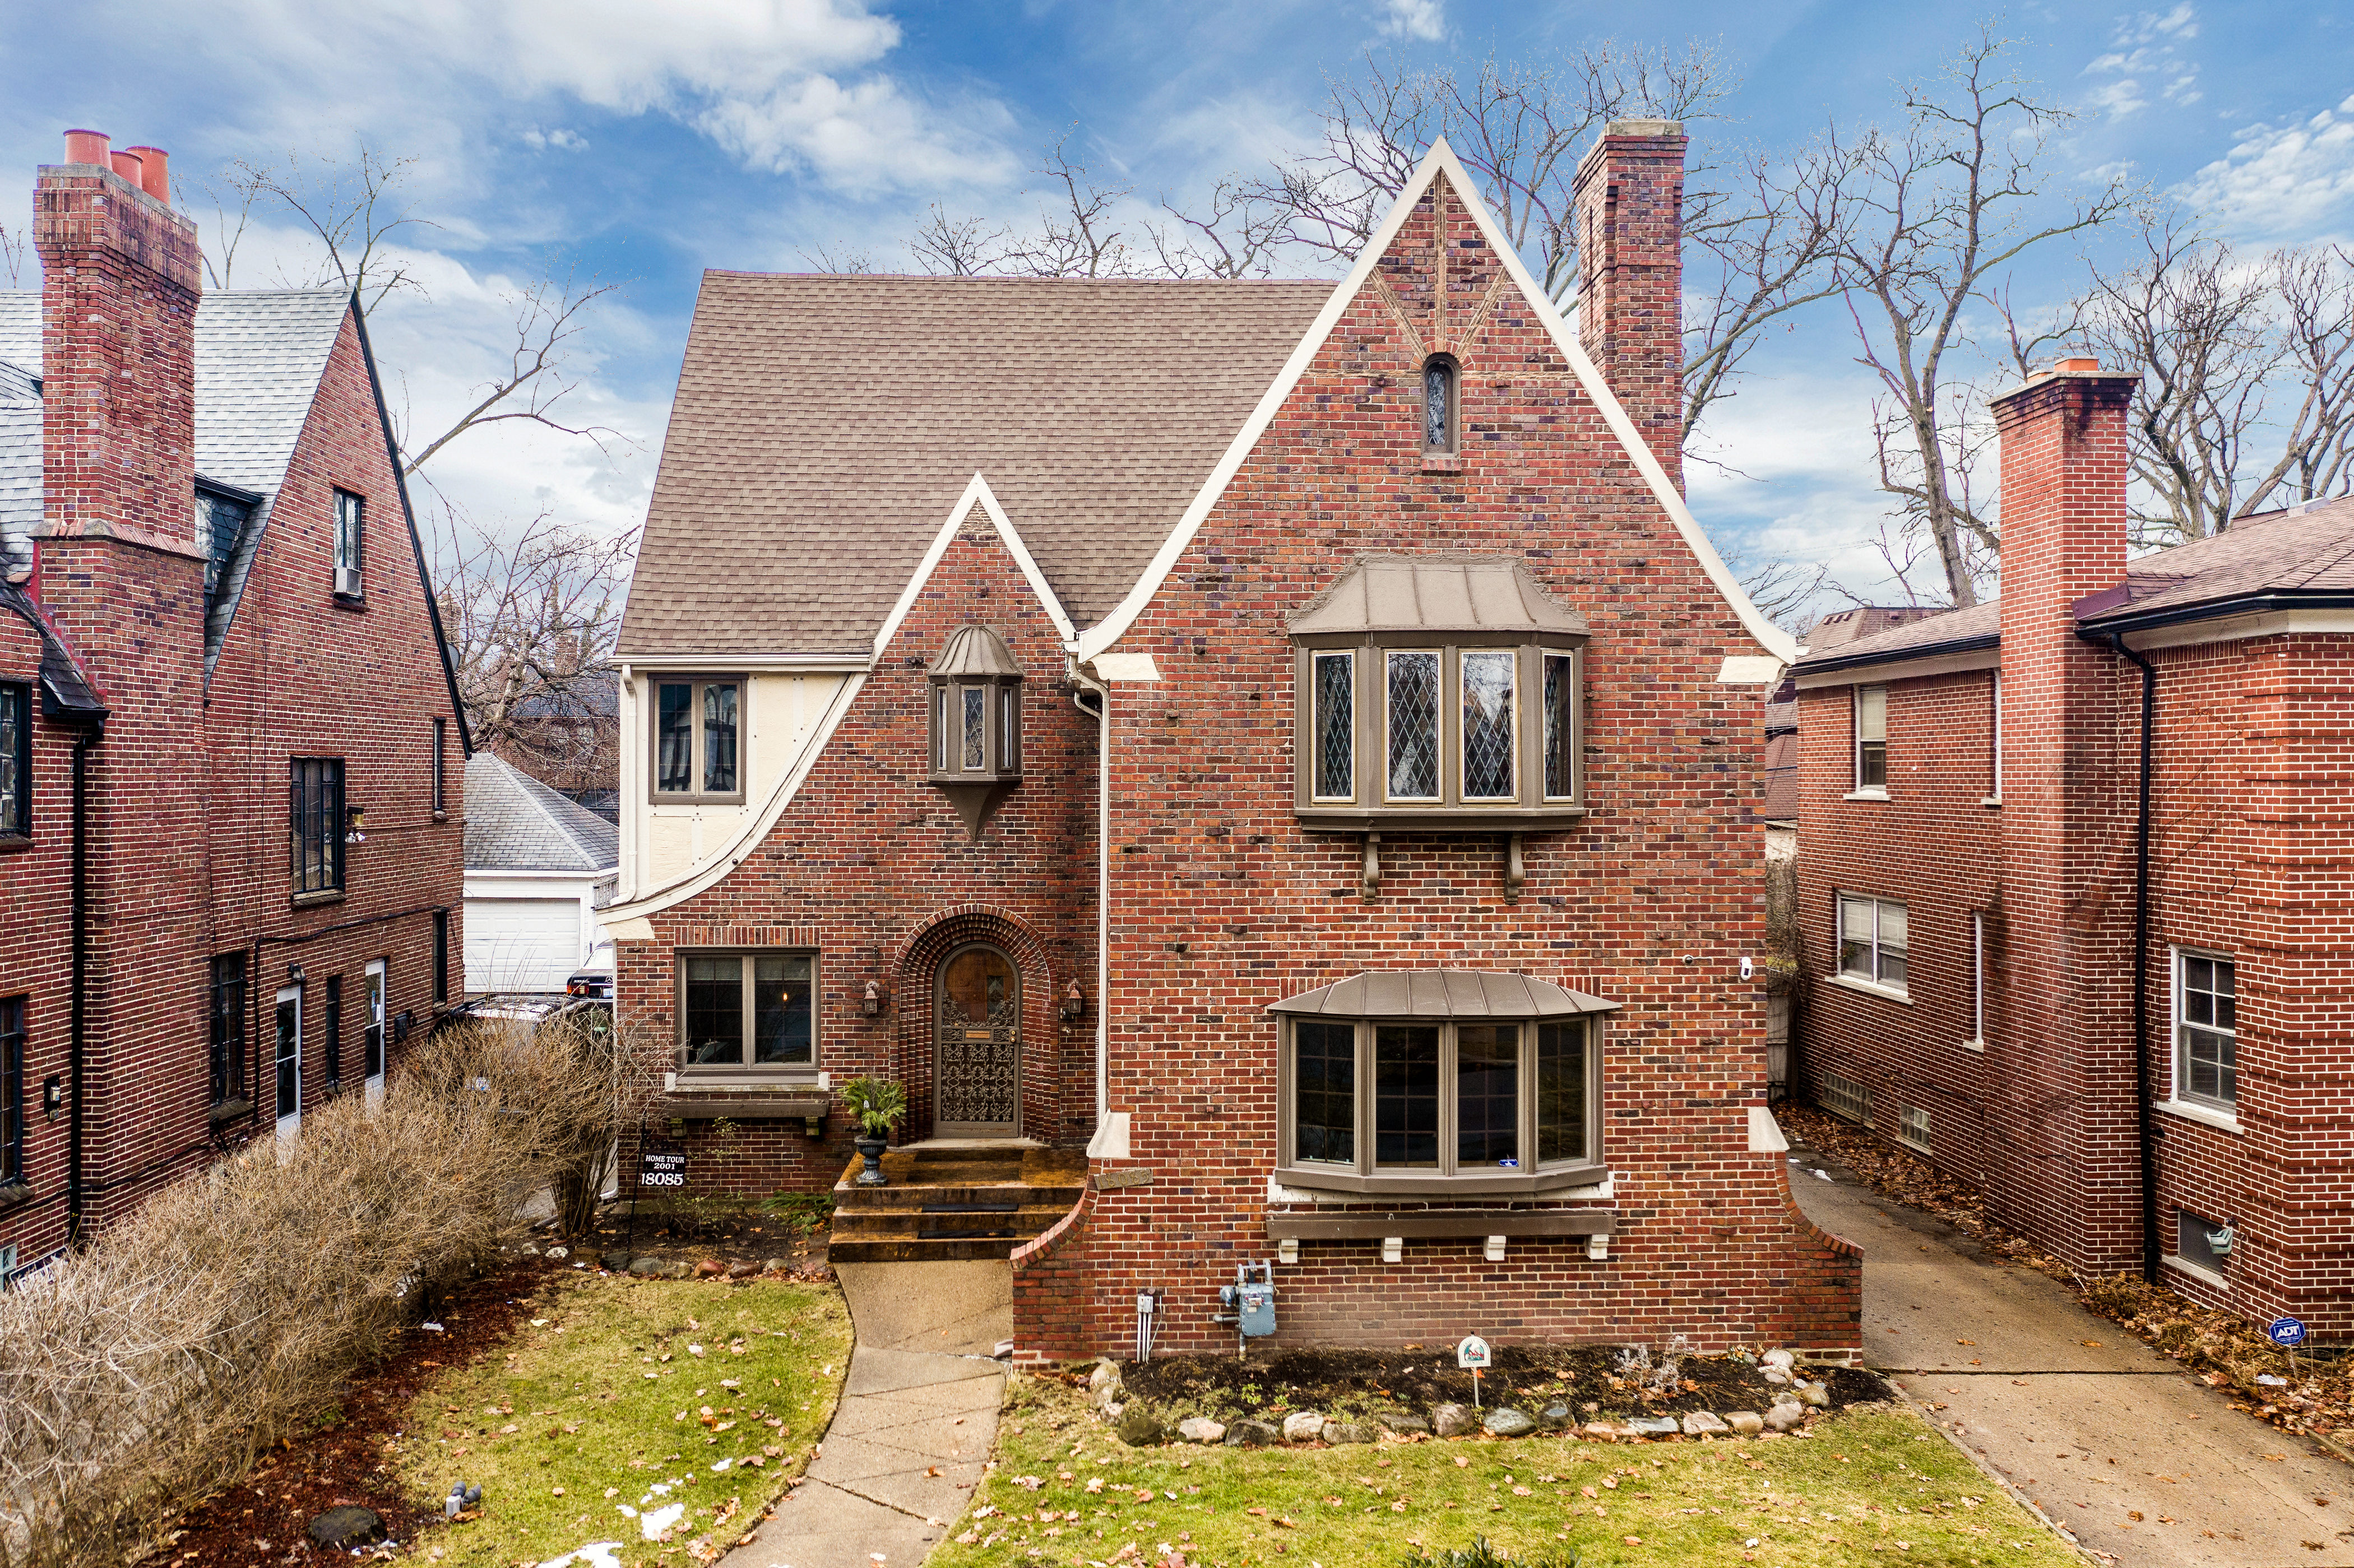 A brick home with multiple roof lines and leaded glass bay windows.